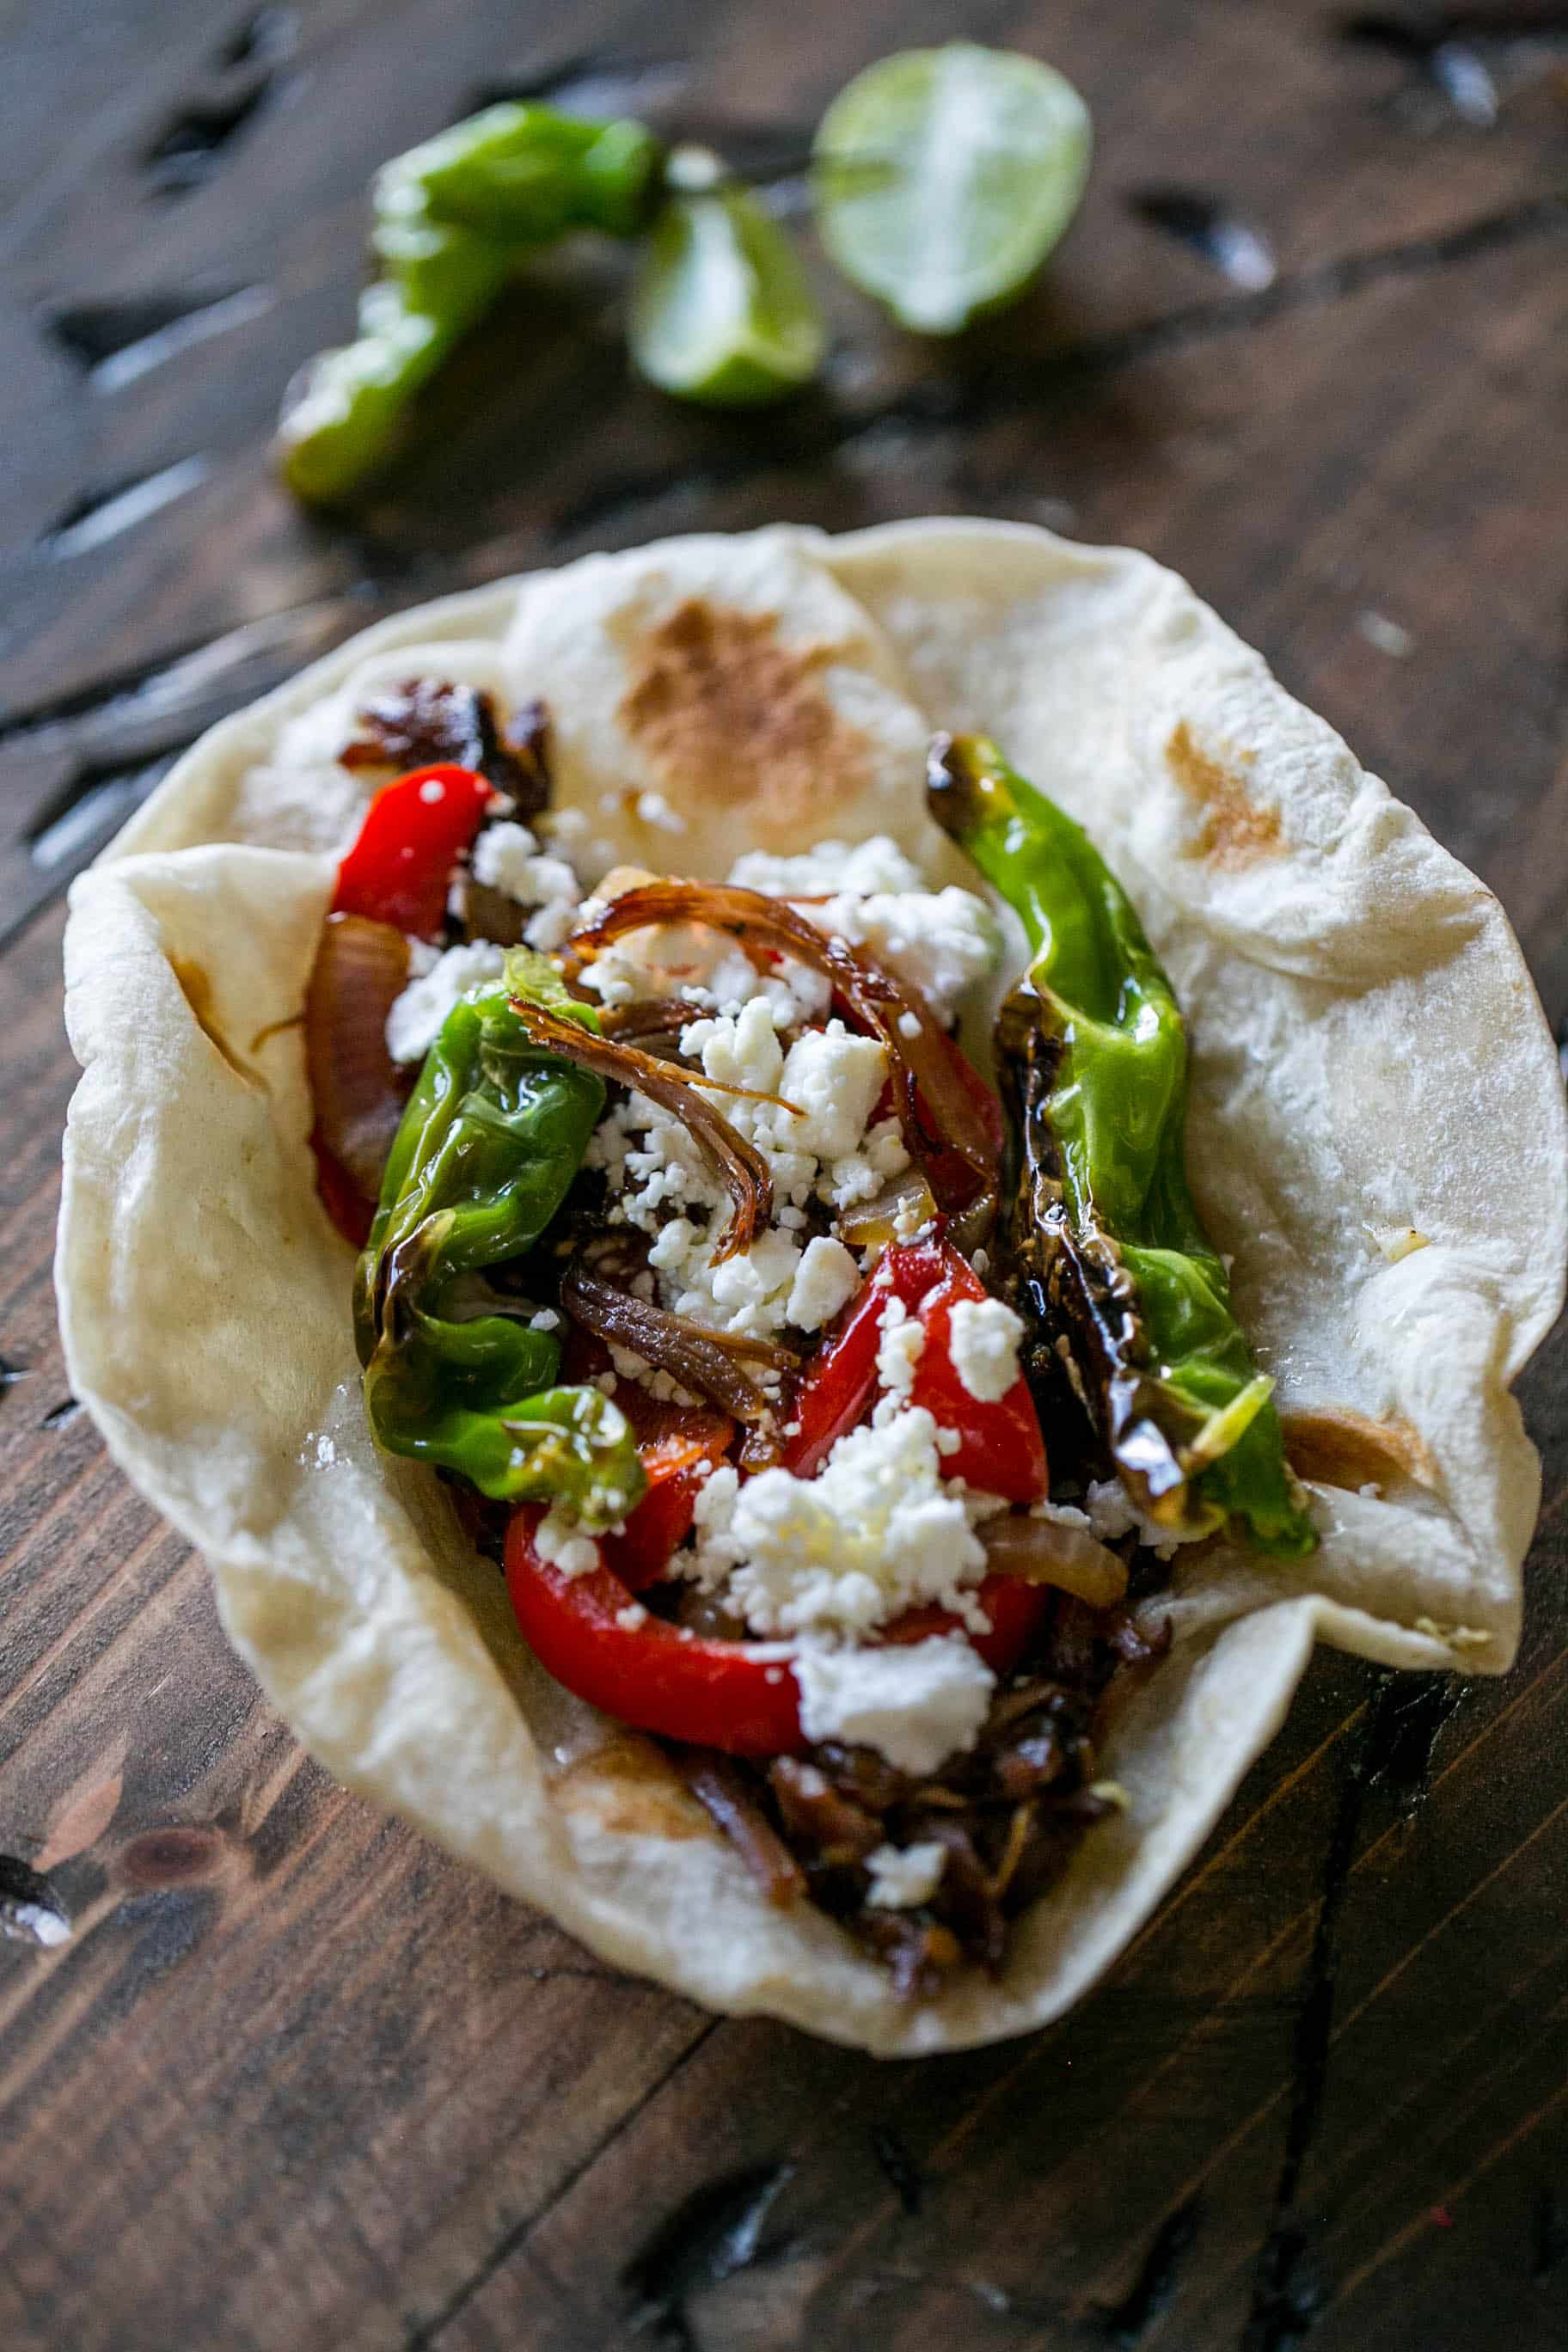 My friends always beg for the recipe for these tequila habanero short rib tacos - they are so delicious!